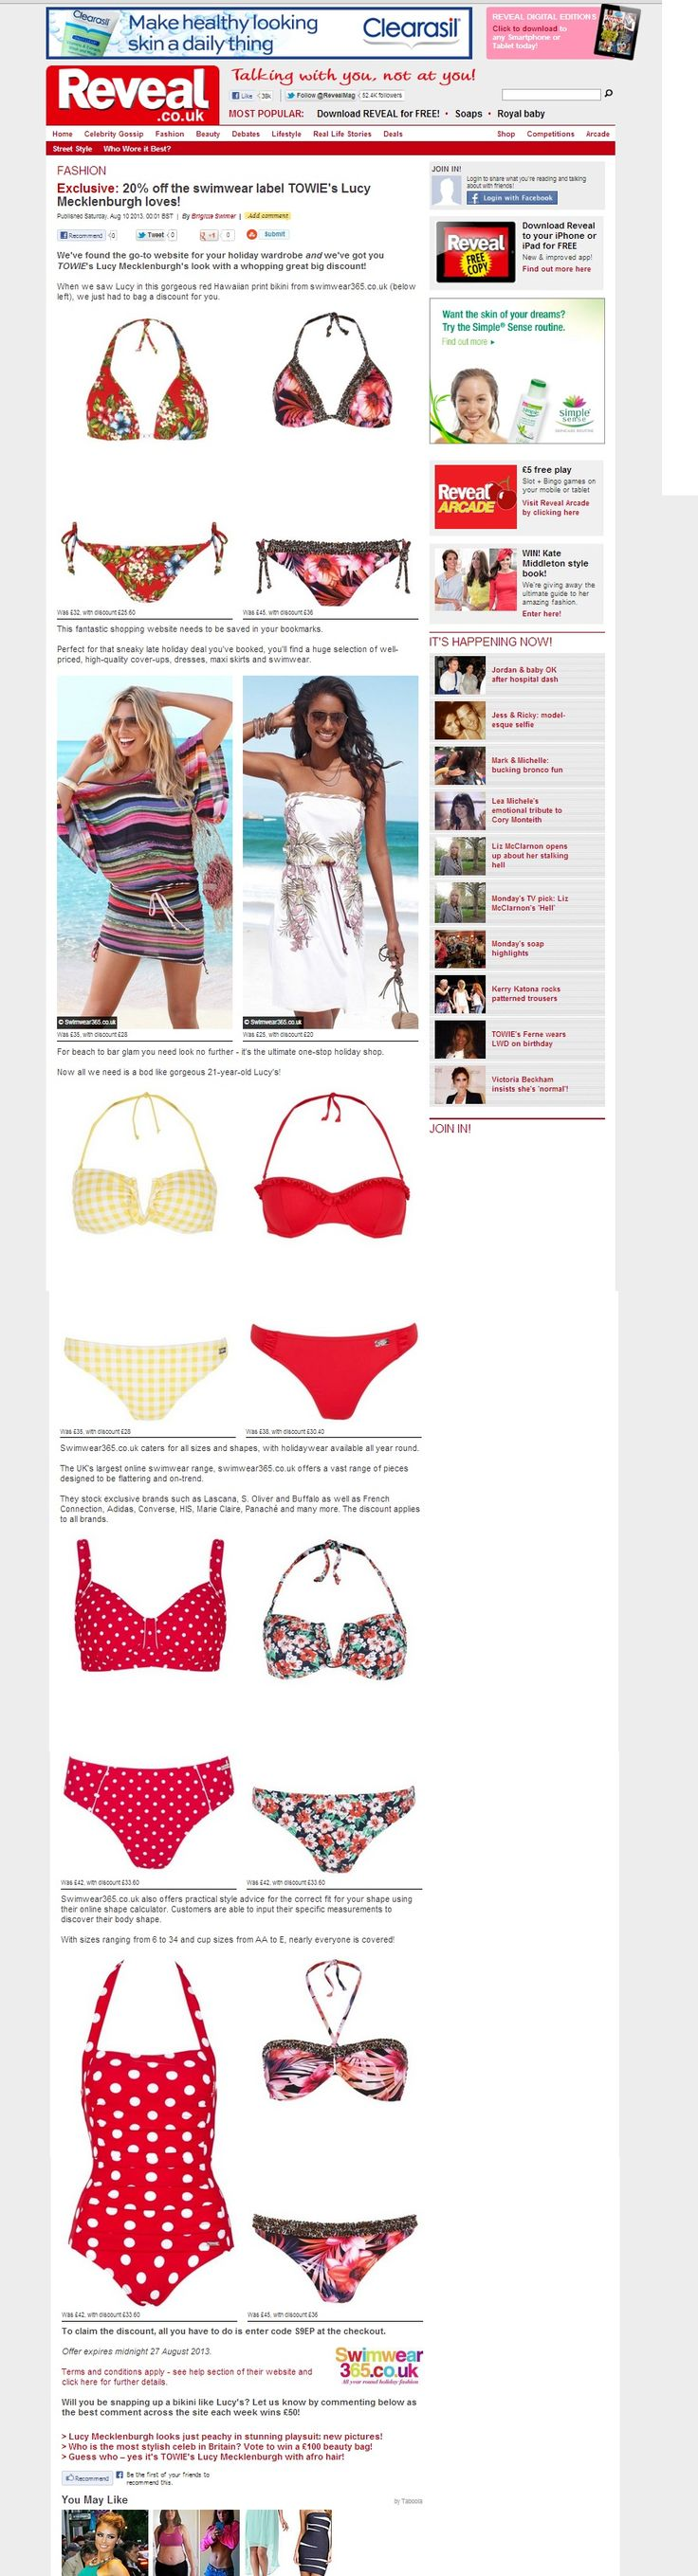 Jette Multi-Coloured Bandeau Bikini | Buffalo Yellow Checked Bandeau Bikini | LASCANA Red Polka Dot Swimsuit | Jette Multi-Coloured Ruched Triangle Bikini | Chiemsee Multi-Coloured Bandeau Bikini | Beachtime White Floral Bandeau Dress | Buffalo London Multi Striped Batwing Top | #RevealMagazine #Swimwear365